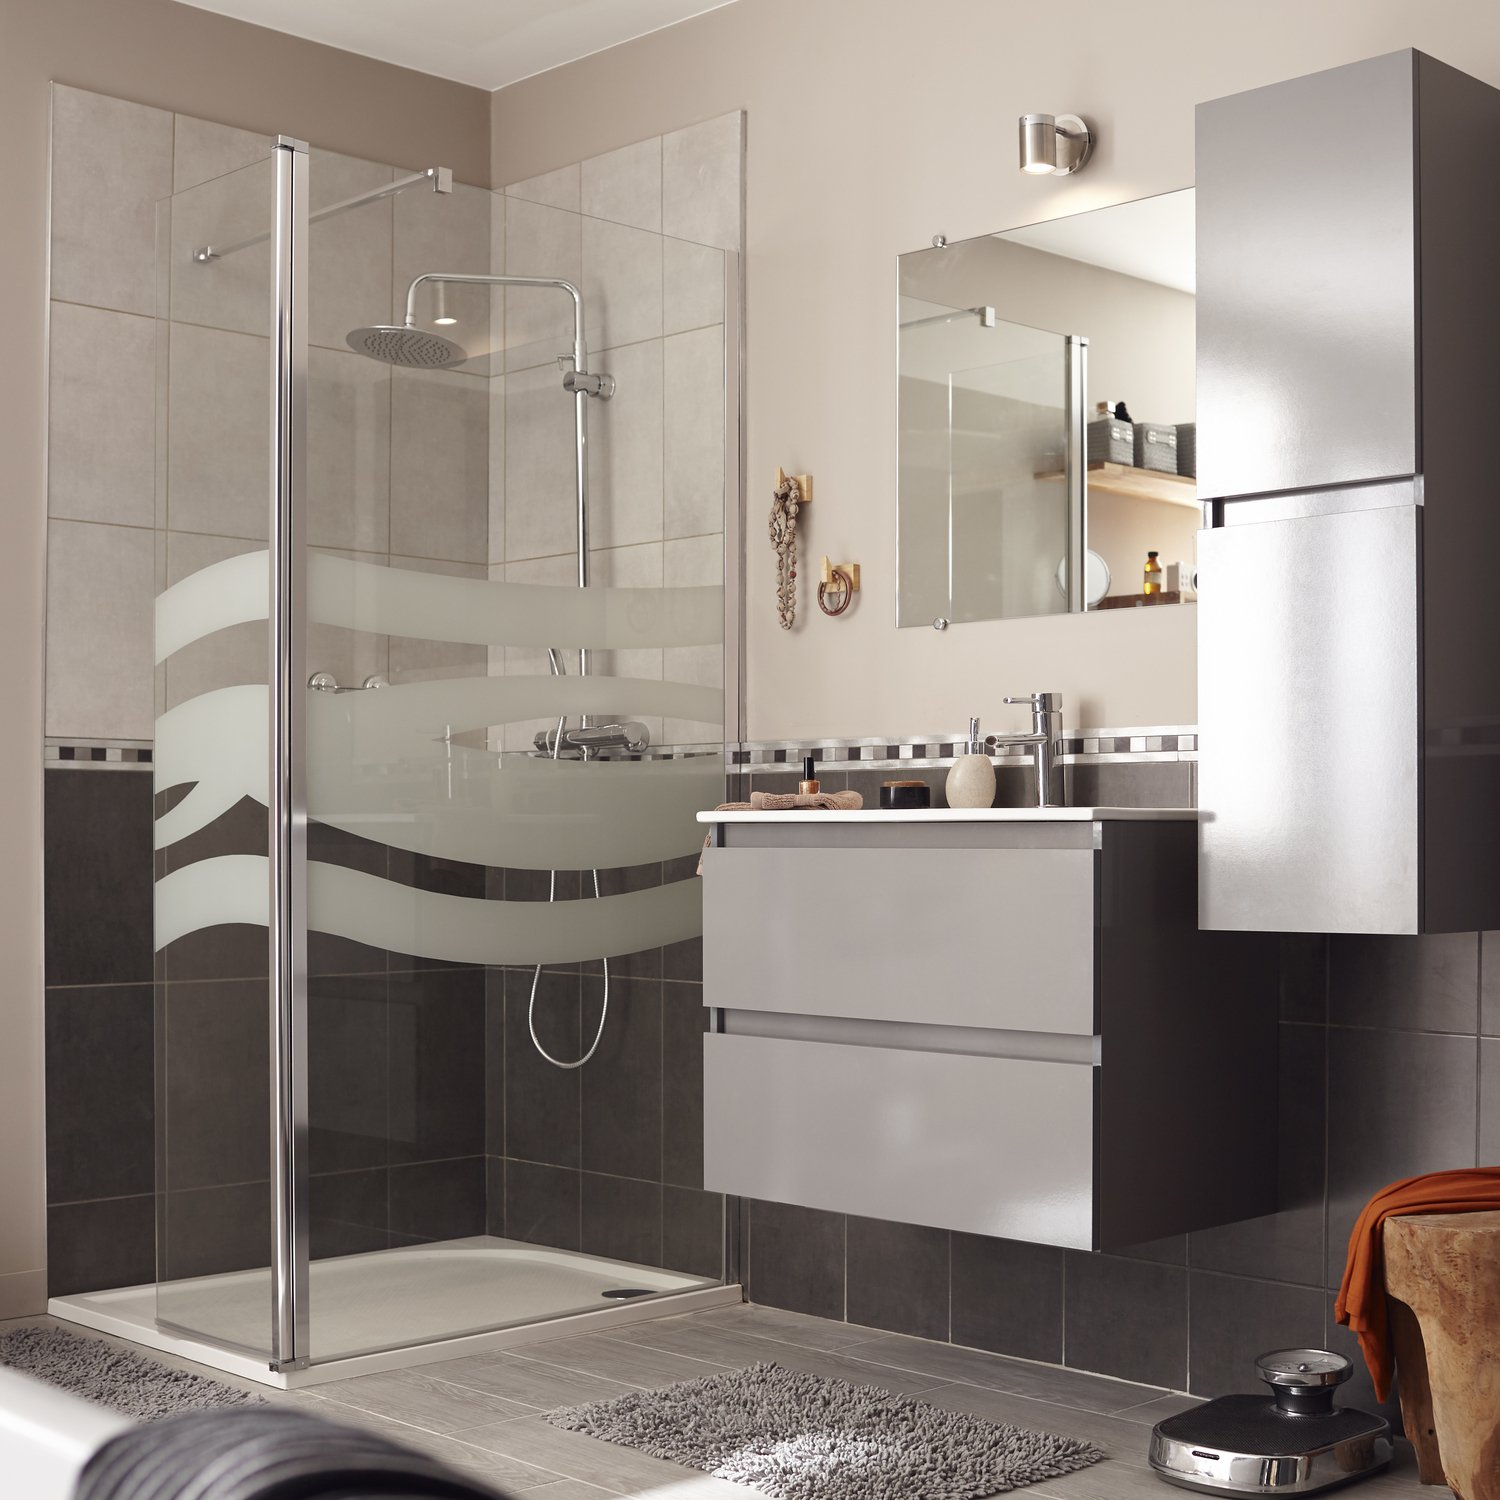 Awesome Salle De Bain Blanche Et Grise Pictures - House ...